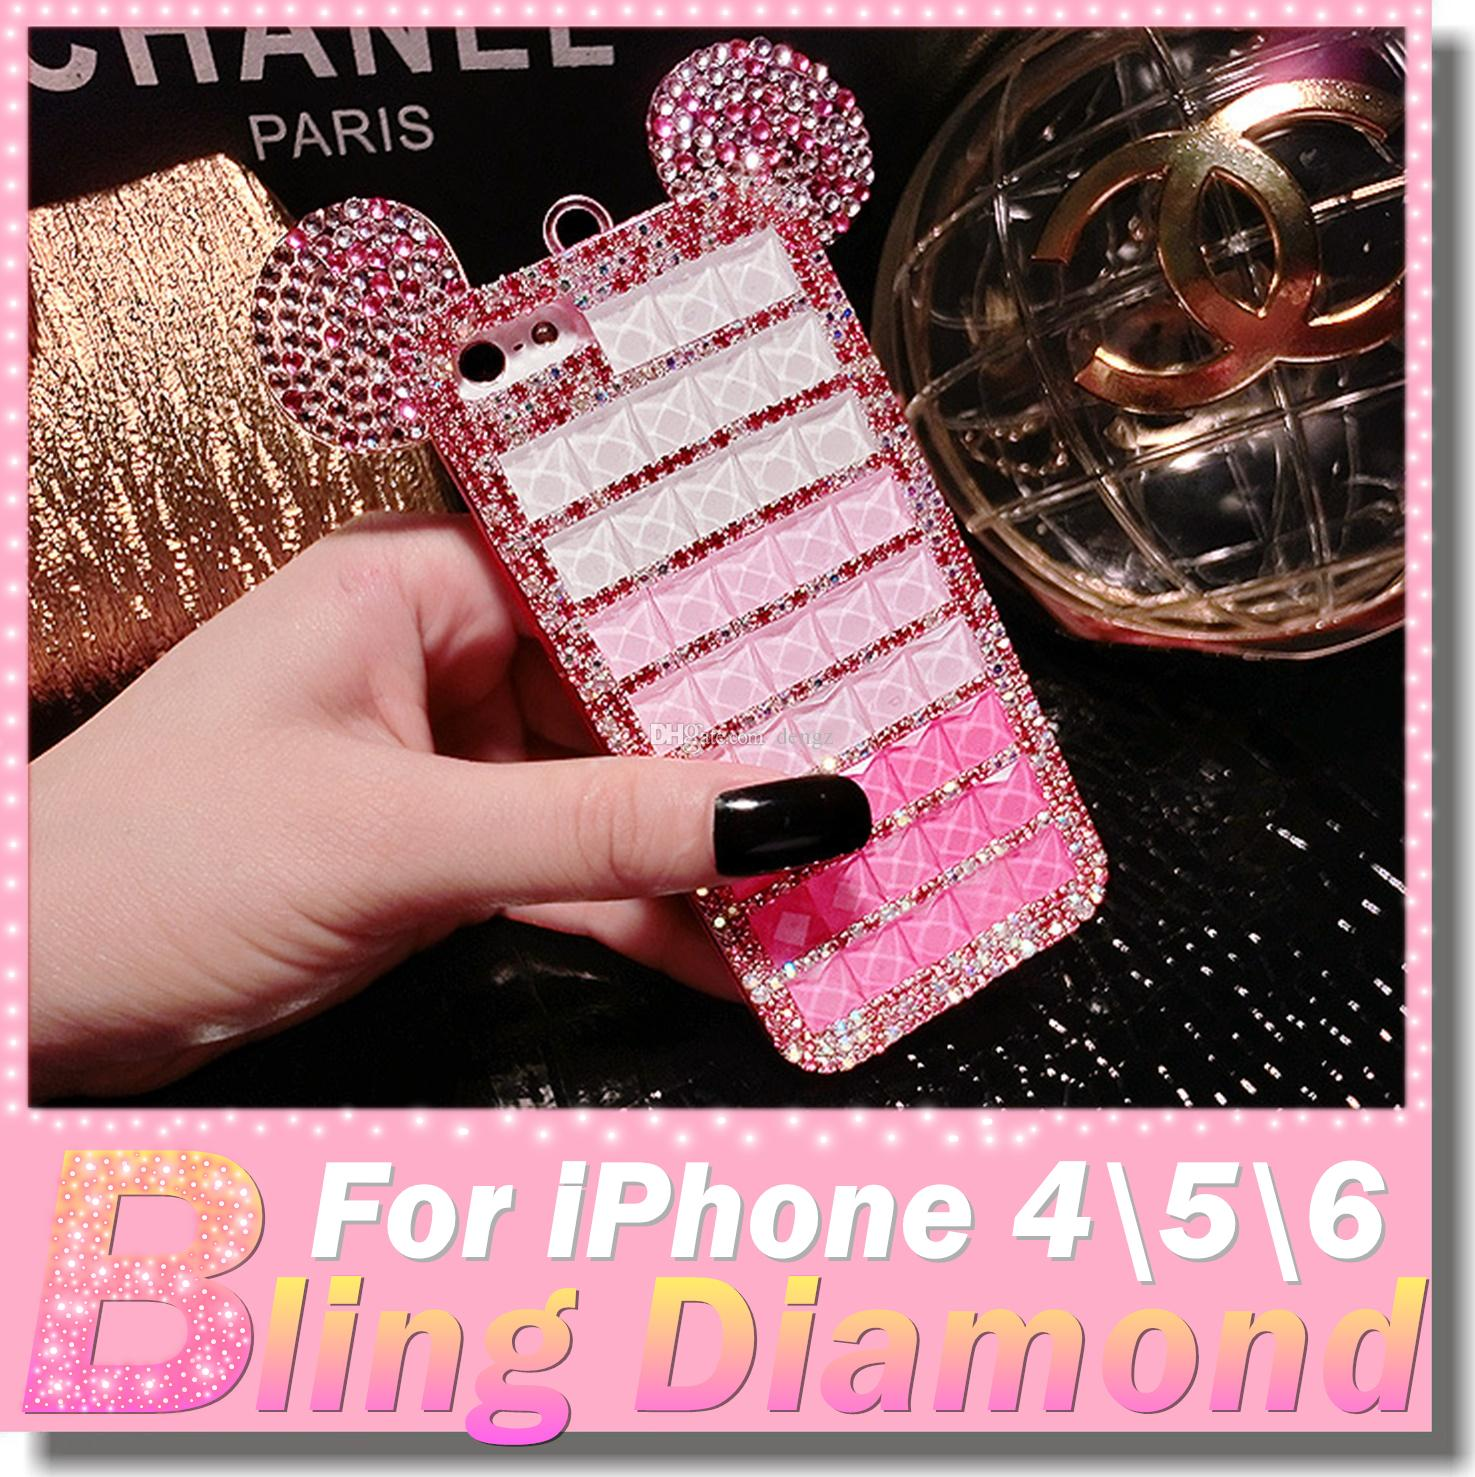 ... Rhinestone Crystal Case iphone 5/5s 4s Diamond Skin Glitter DIY Bling